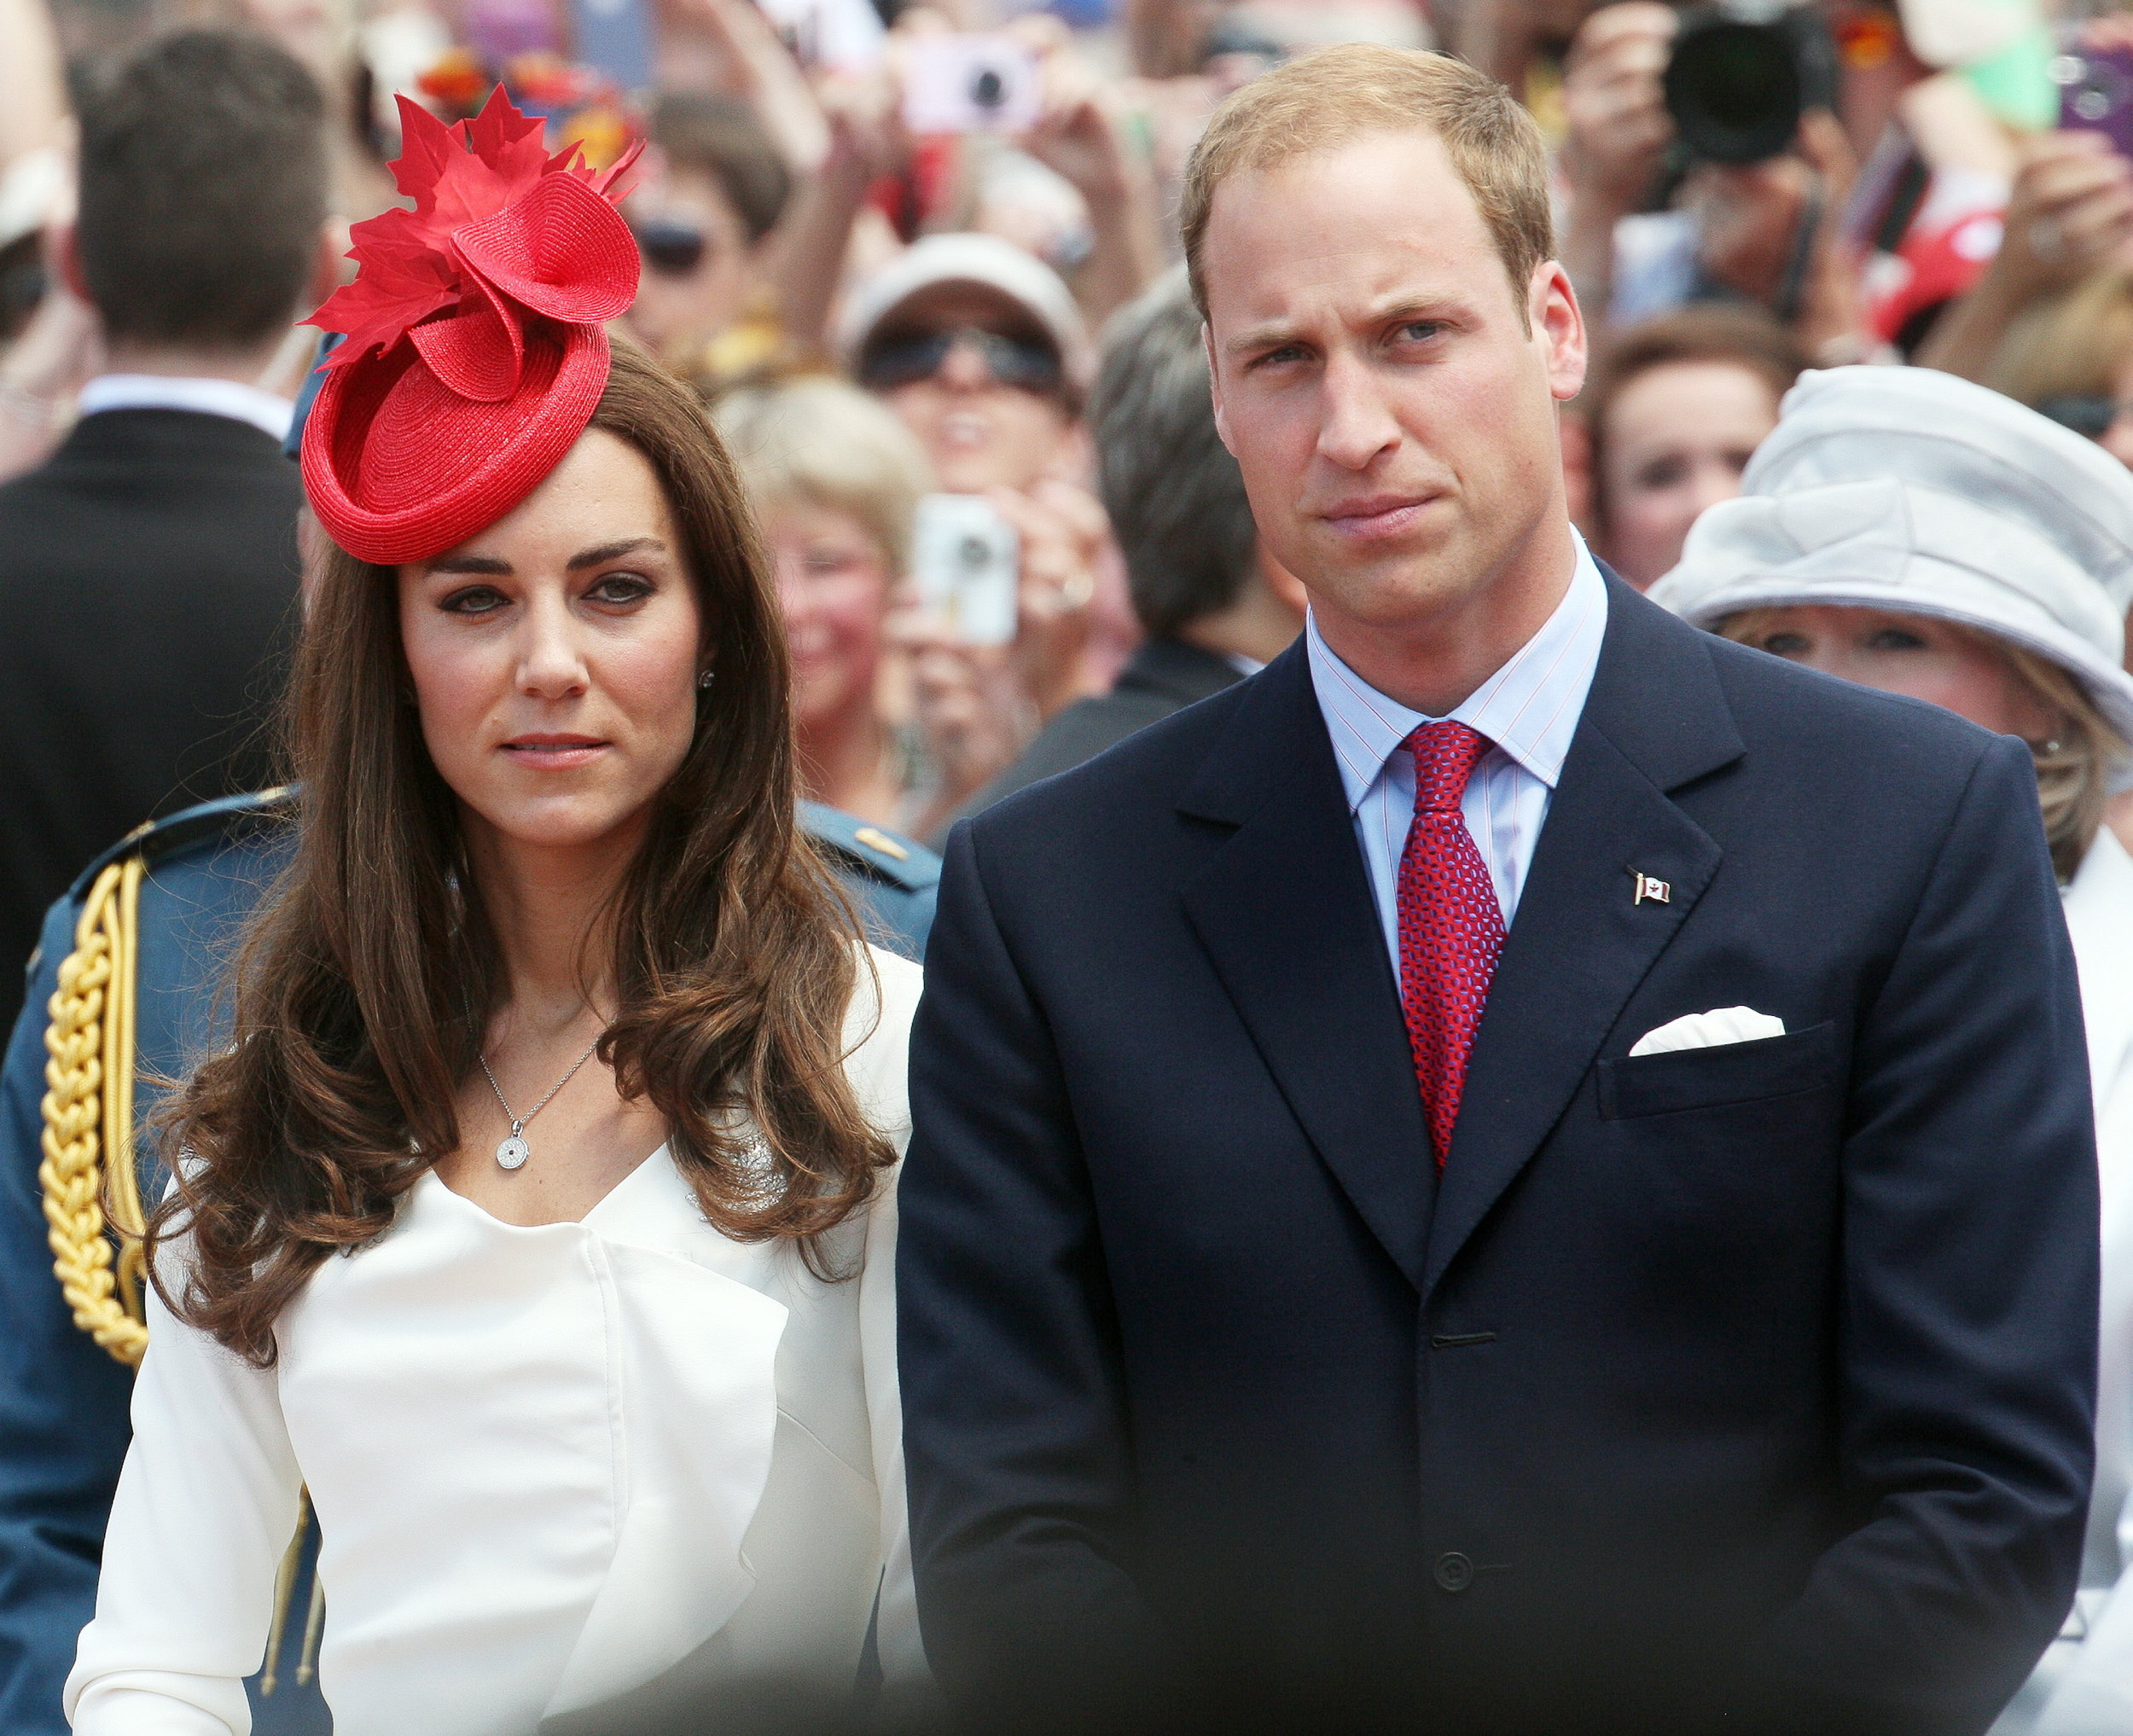 Matrimonio Kate E William : Nozze in puglia anche kate e william forse harry pippa